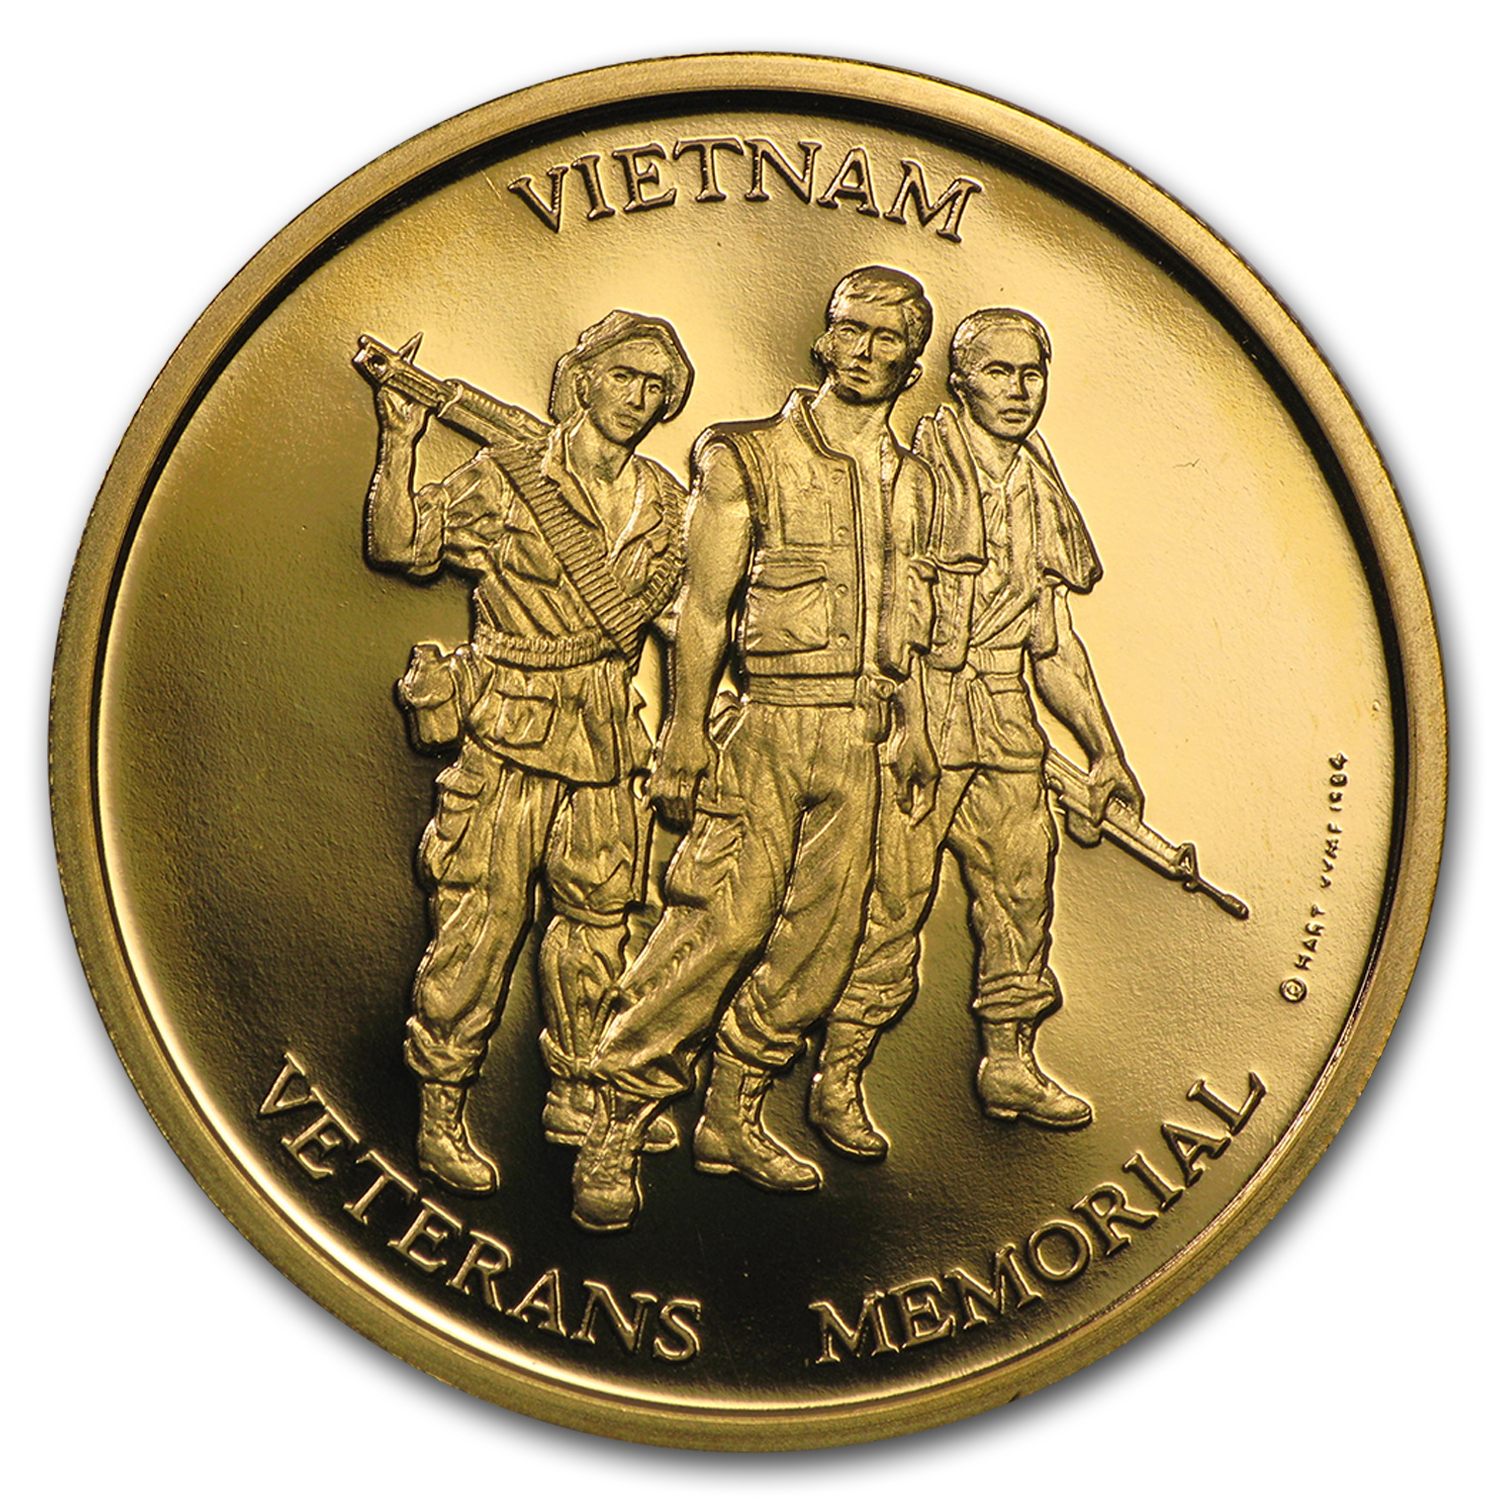 Vietnam Veterans Memorial 1/2 oz Gold Medal